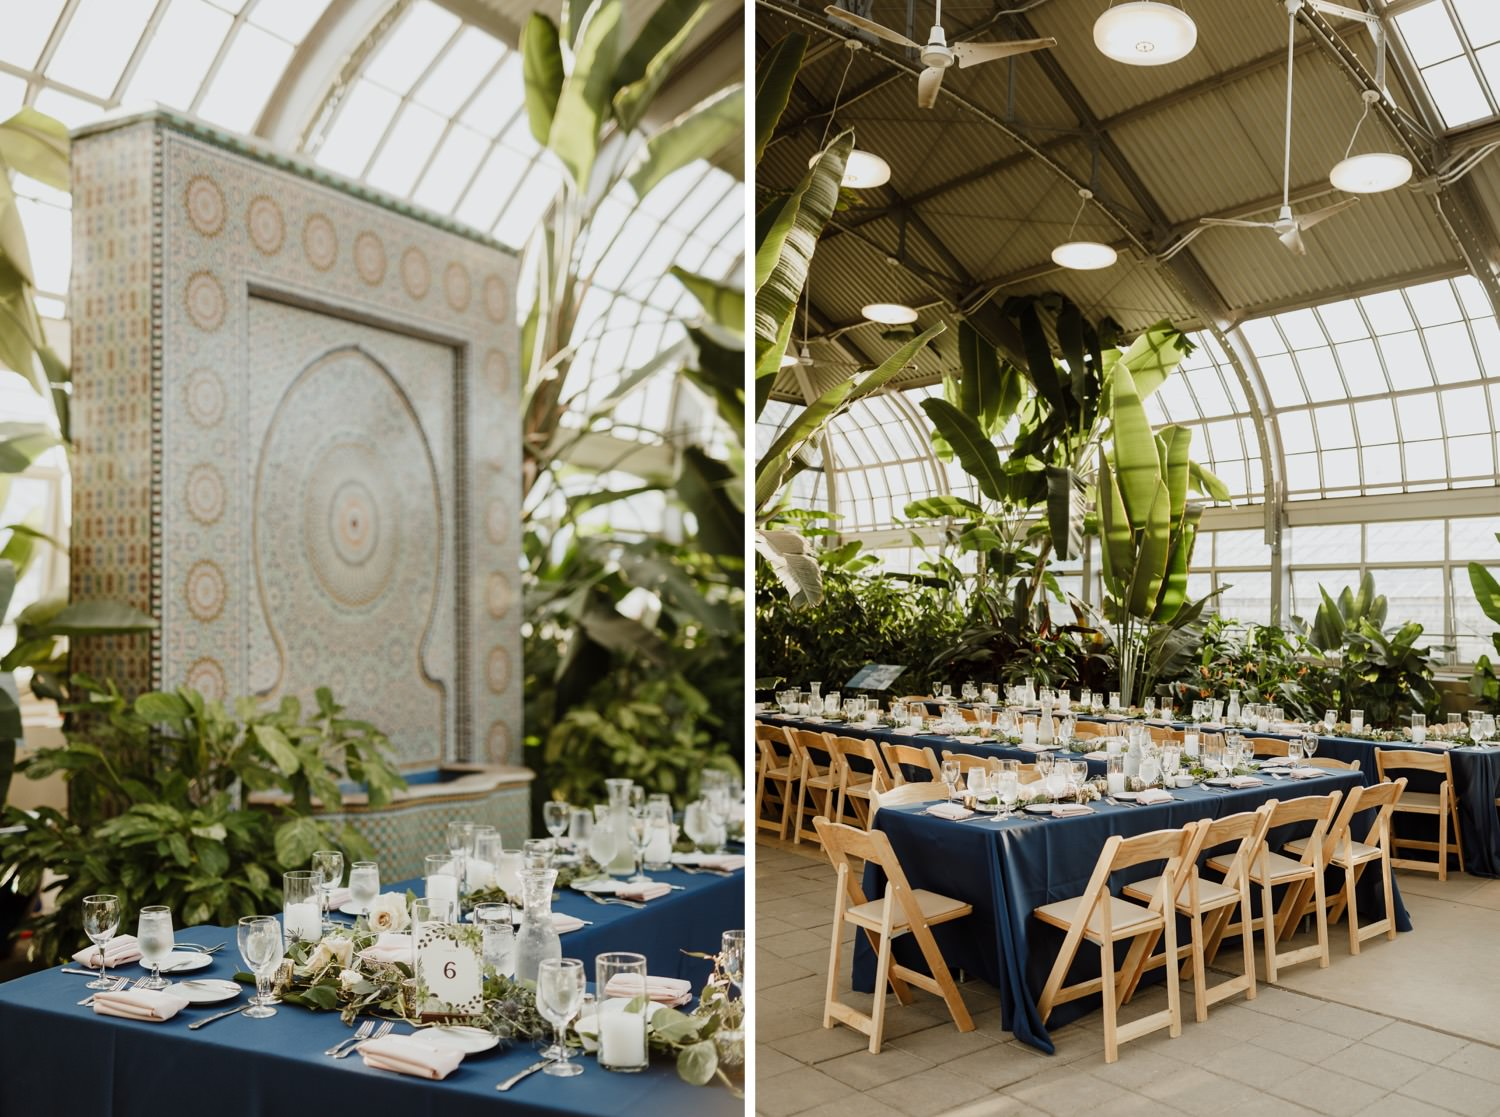 pictures of details and table set up at Garfield park wedding in Chicago